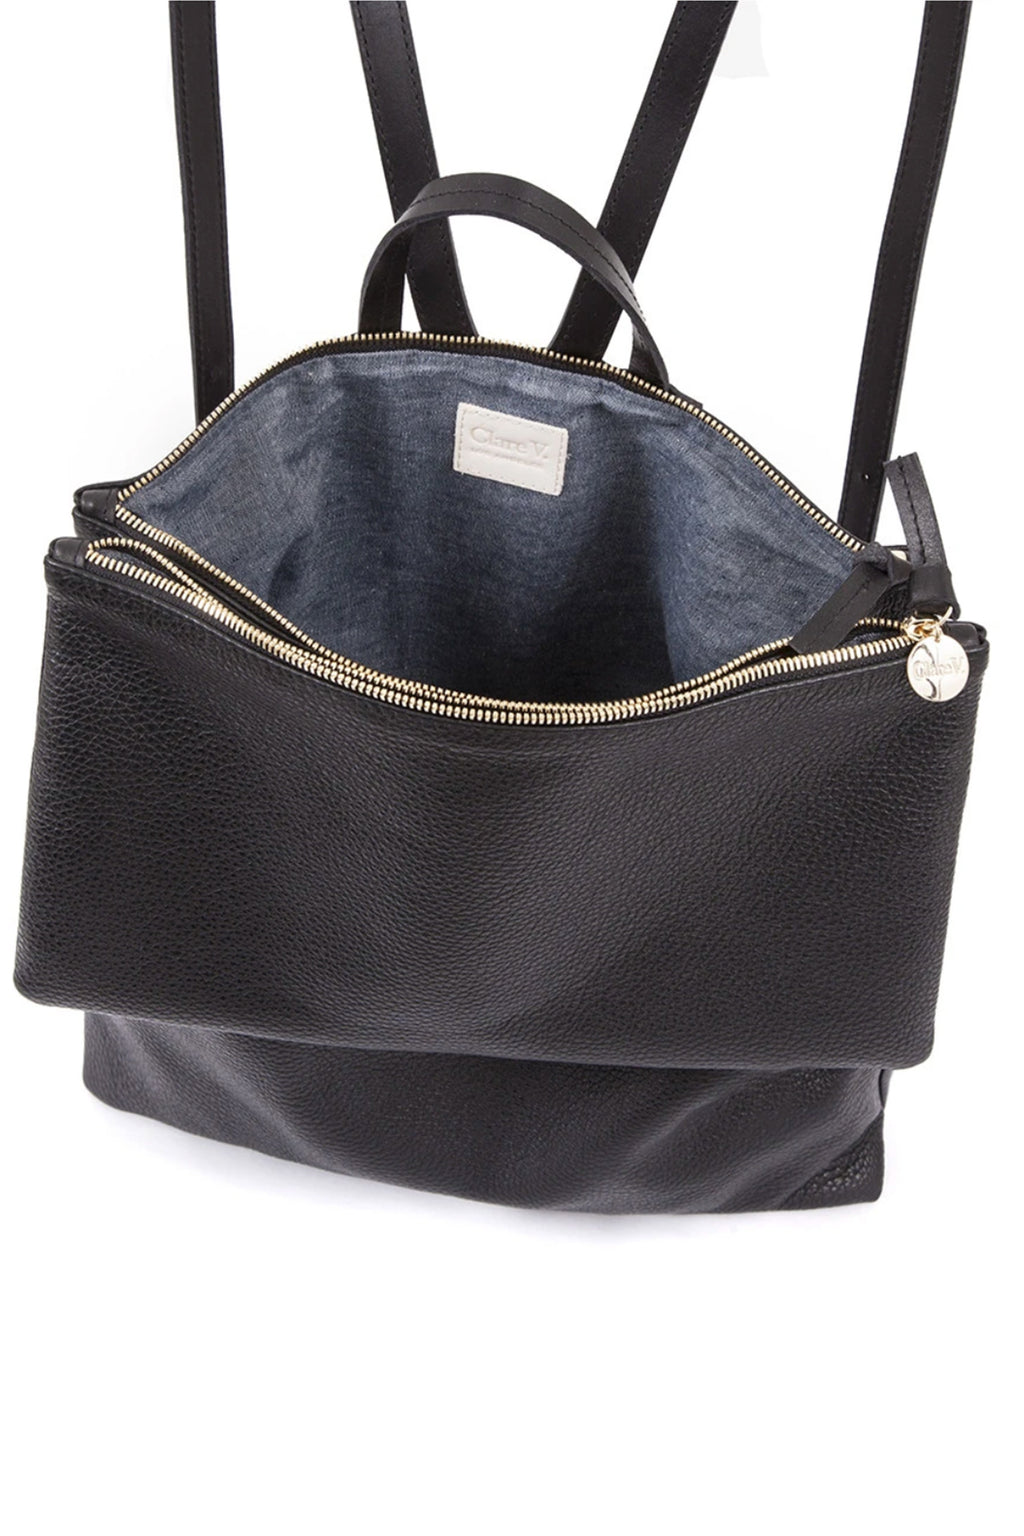 Clare Vivier Black Leather Gravel Agnes BackPack